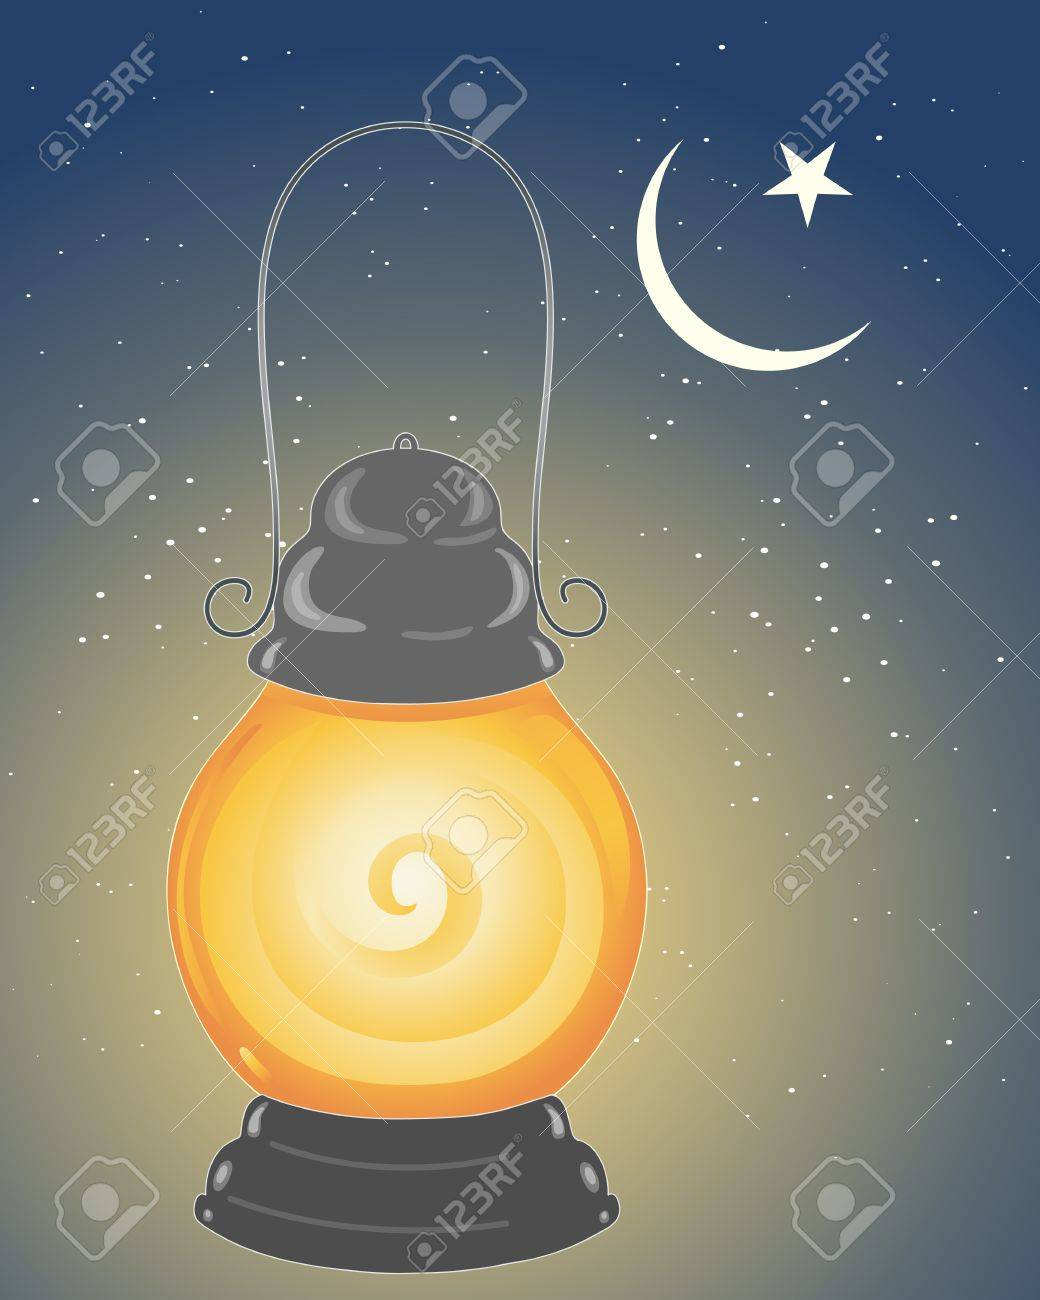 an illustration of a metallic lamp lit to celebrate the festival of ramadan in the islamic calender under a crescent moon and star with a starry sky background Stock Vector - 14855386